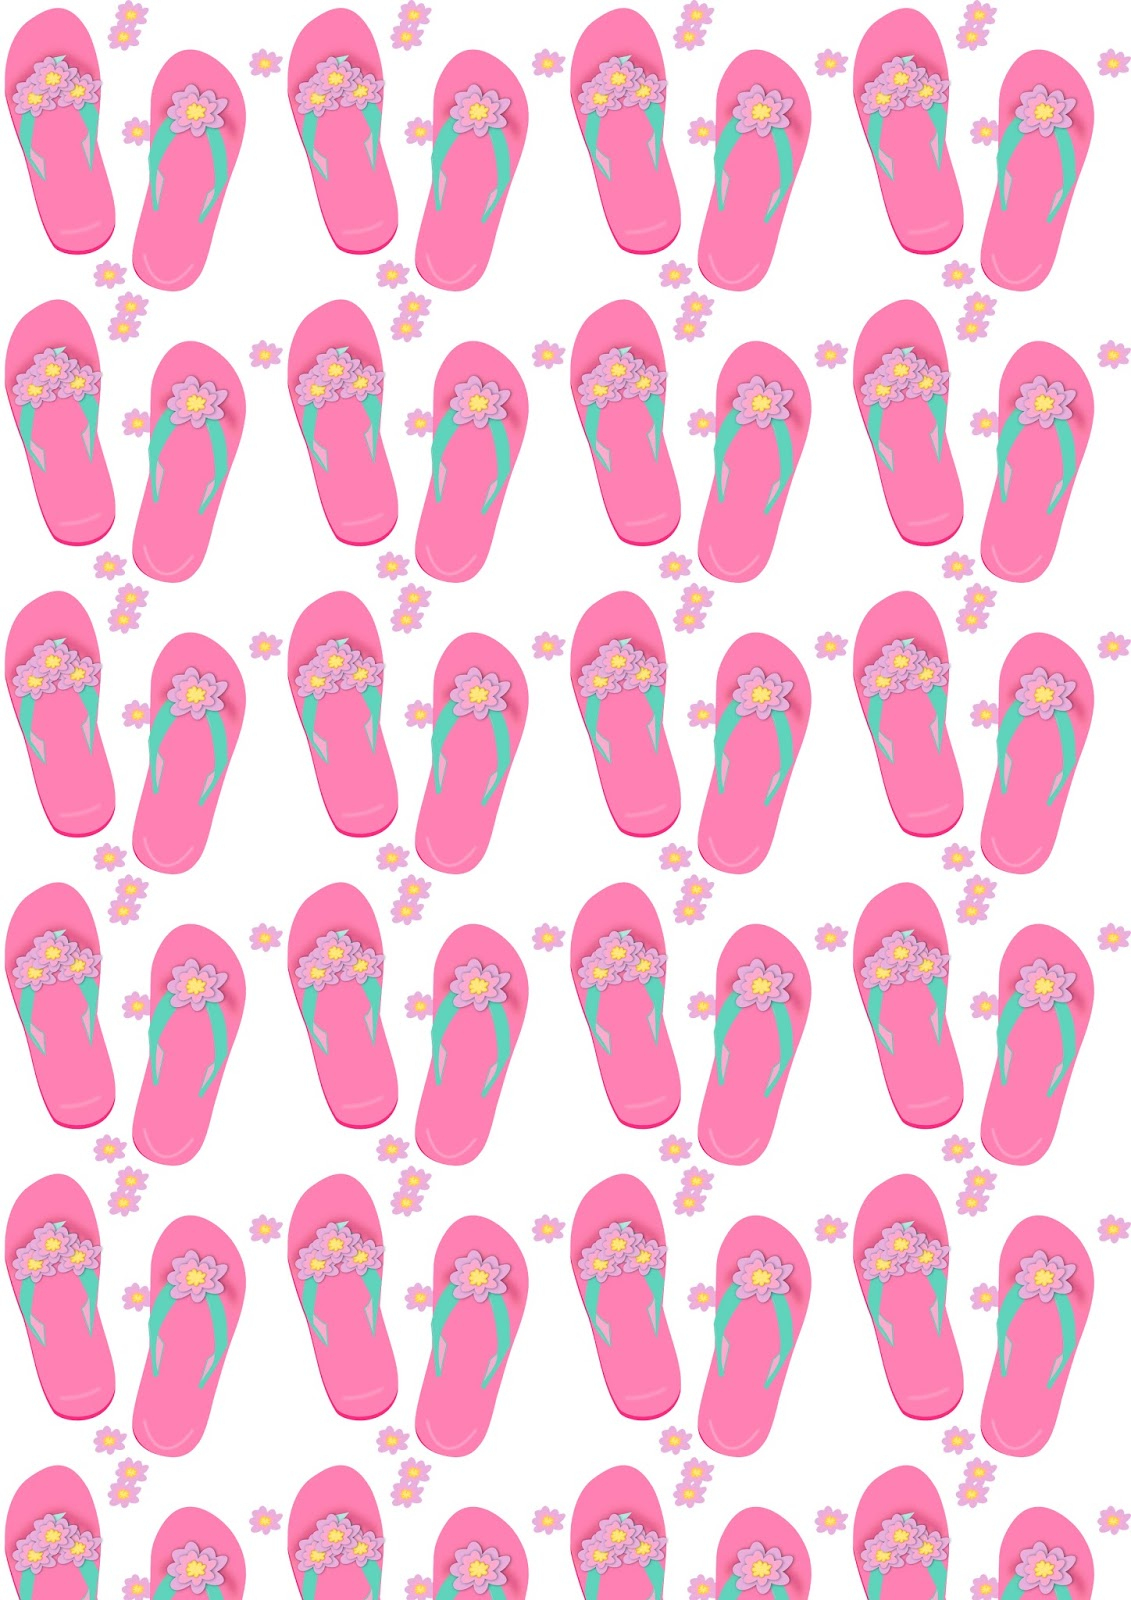 Free Flip Flop Pattern, Download Free Clip Art, Free Clip Art On - Free Printable Flip Flop Pattern